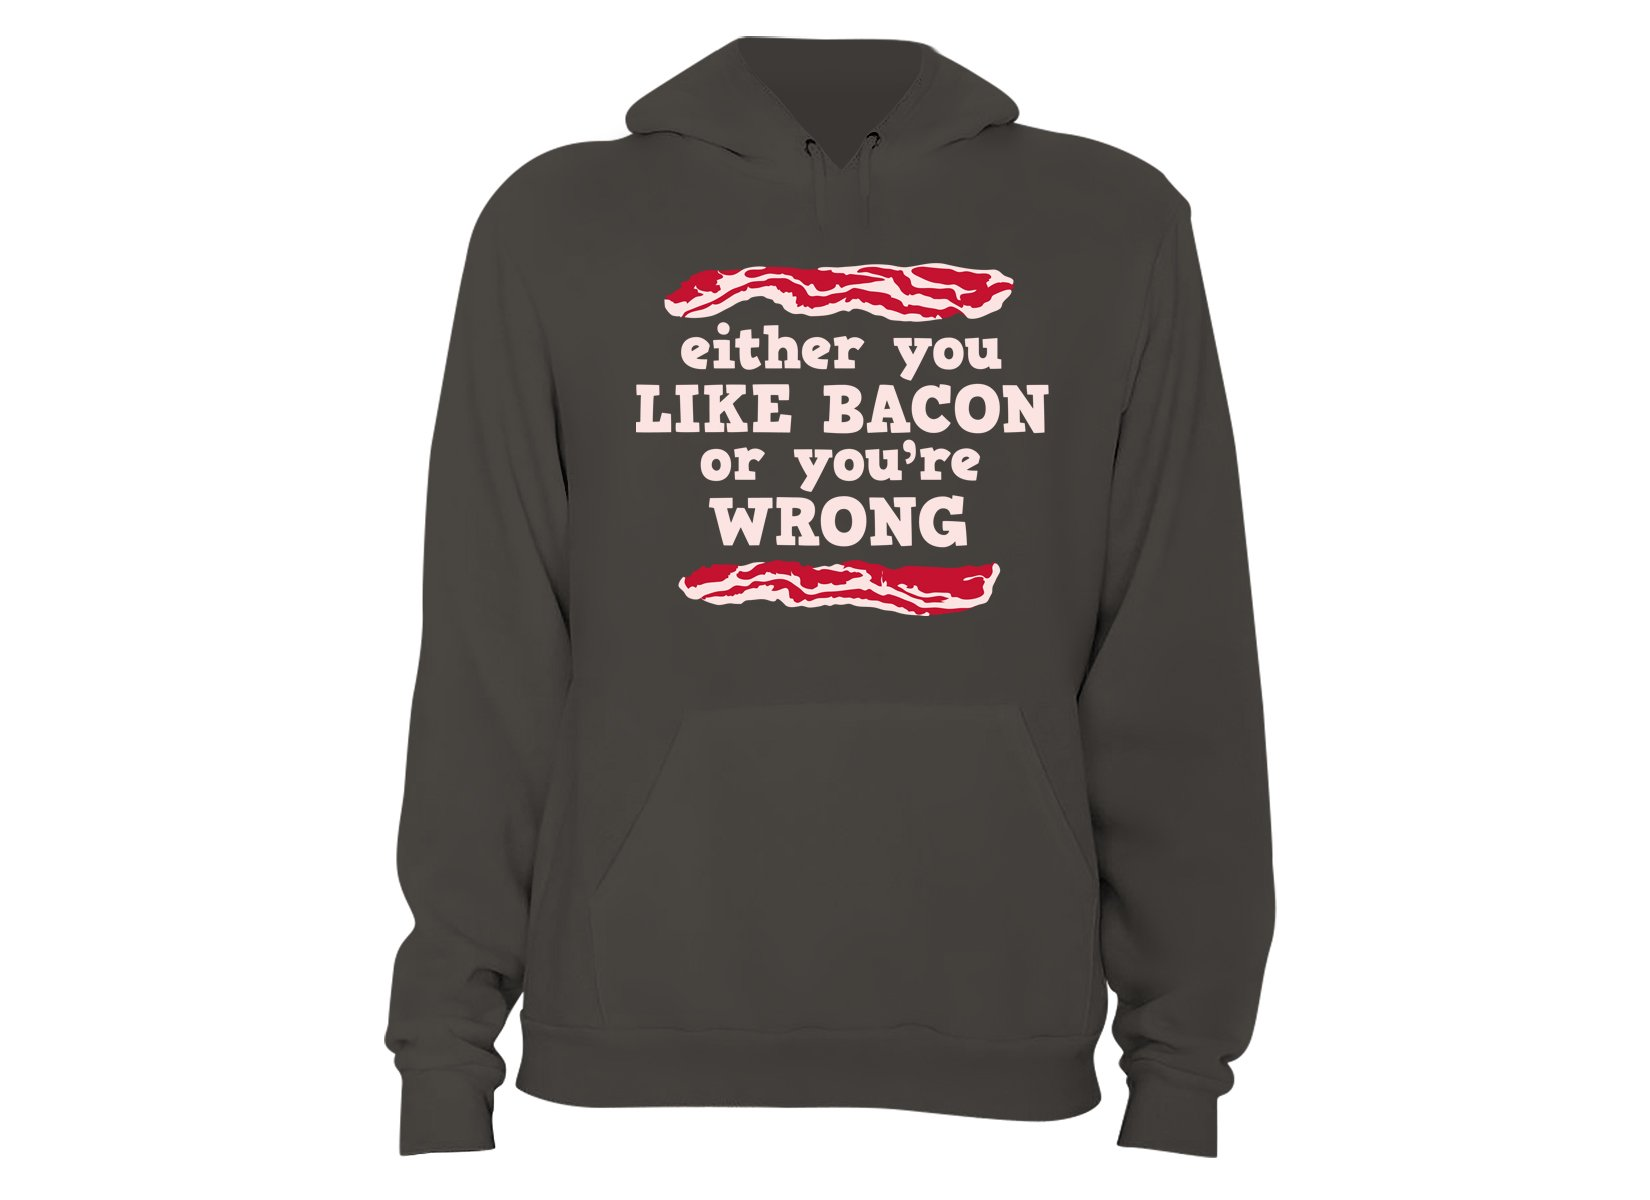 Either You Like Bacon Or You're Wrong on Hoodie